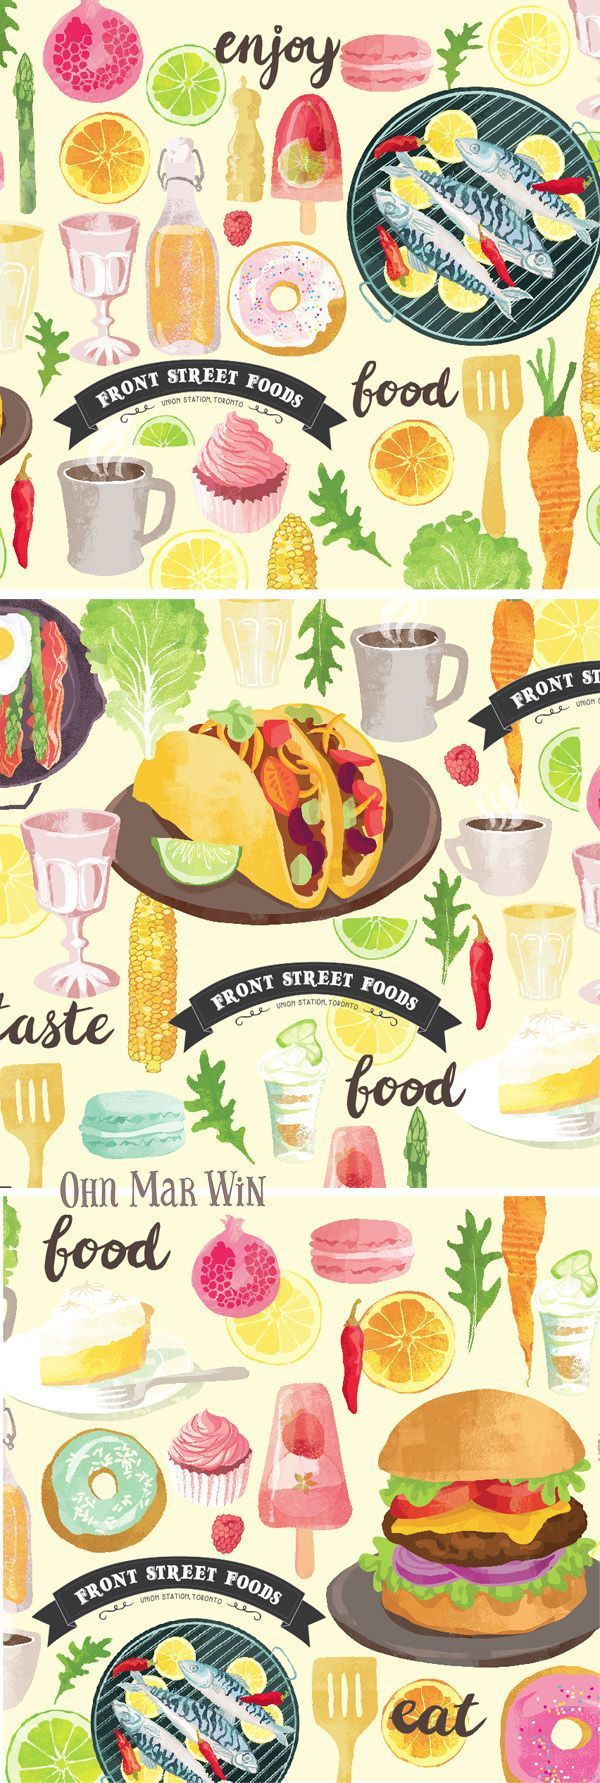 Front Street Foods Banner - Toronto Union Station — Ohn Mar Win Illustration t...